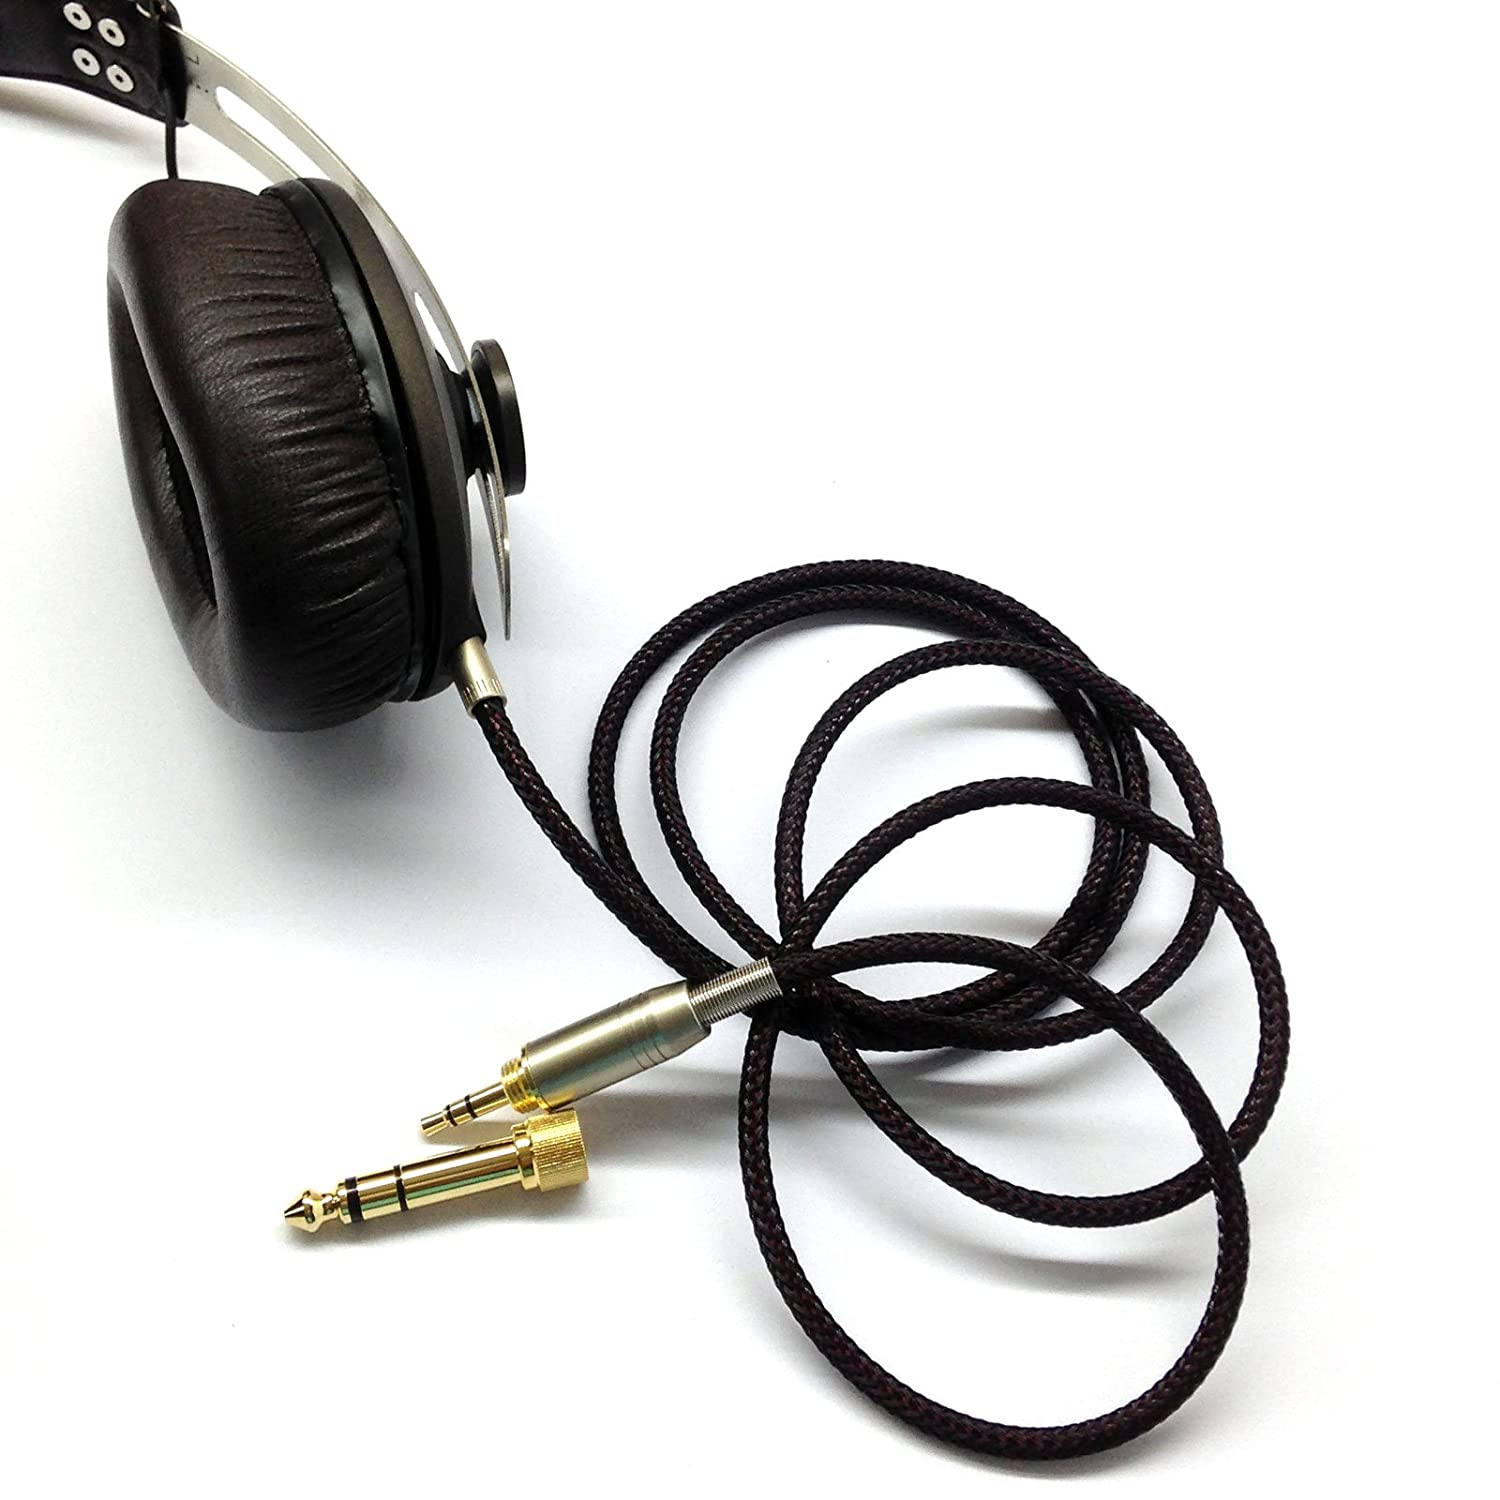 Amazon.com: 1.8m Replacement Audio upgrade Cable For Sennheiser ...